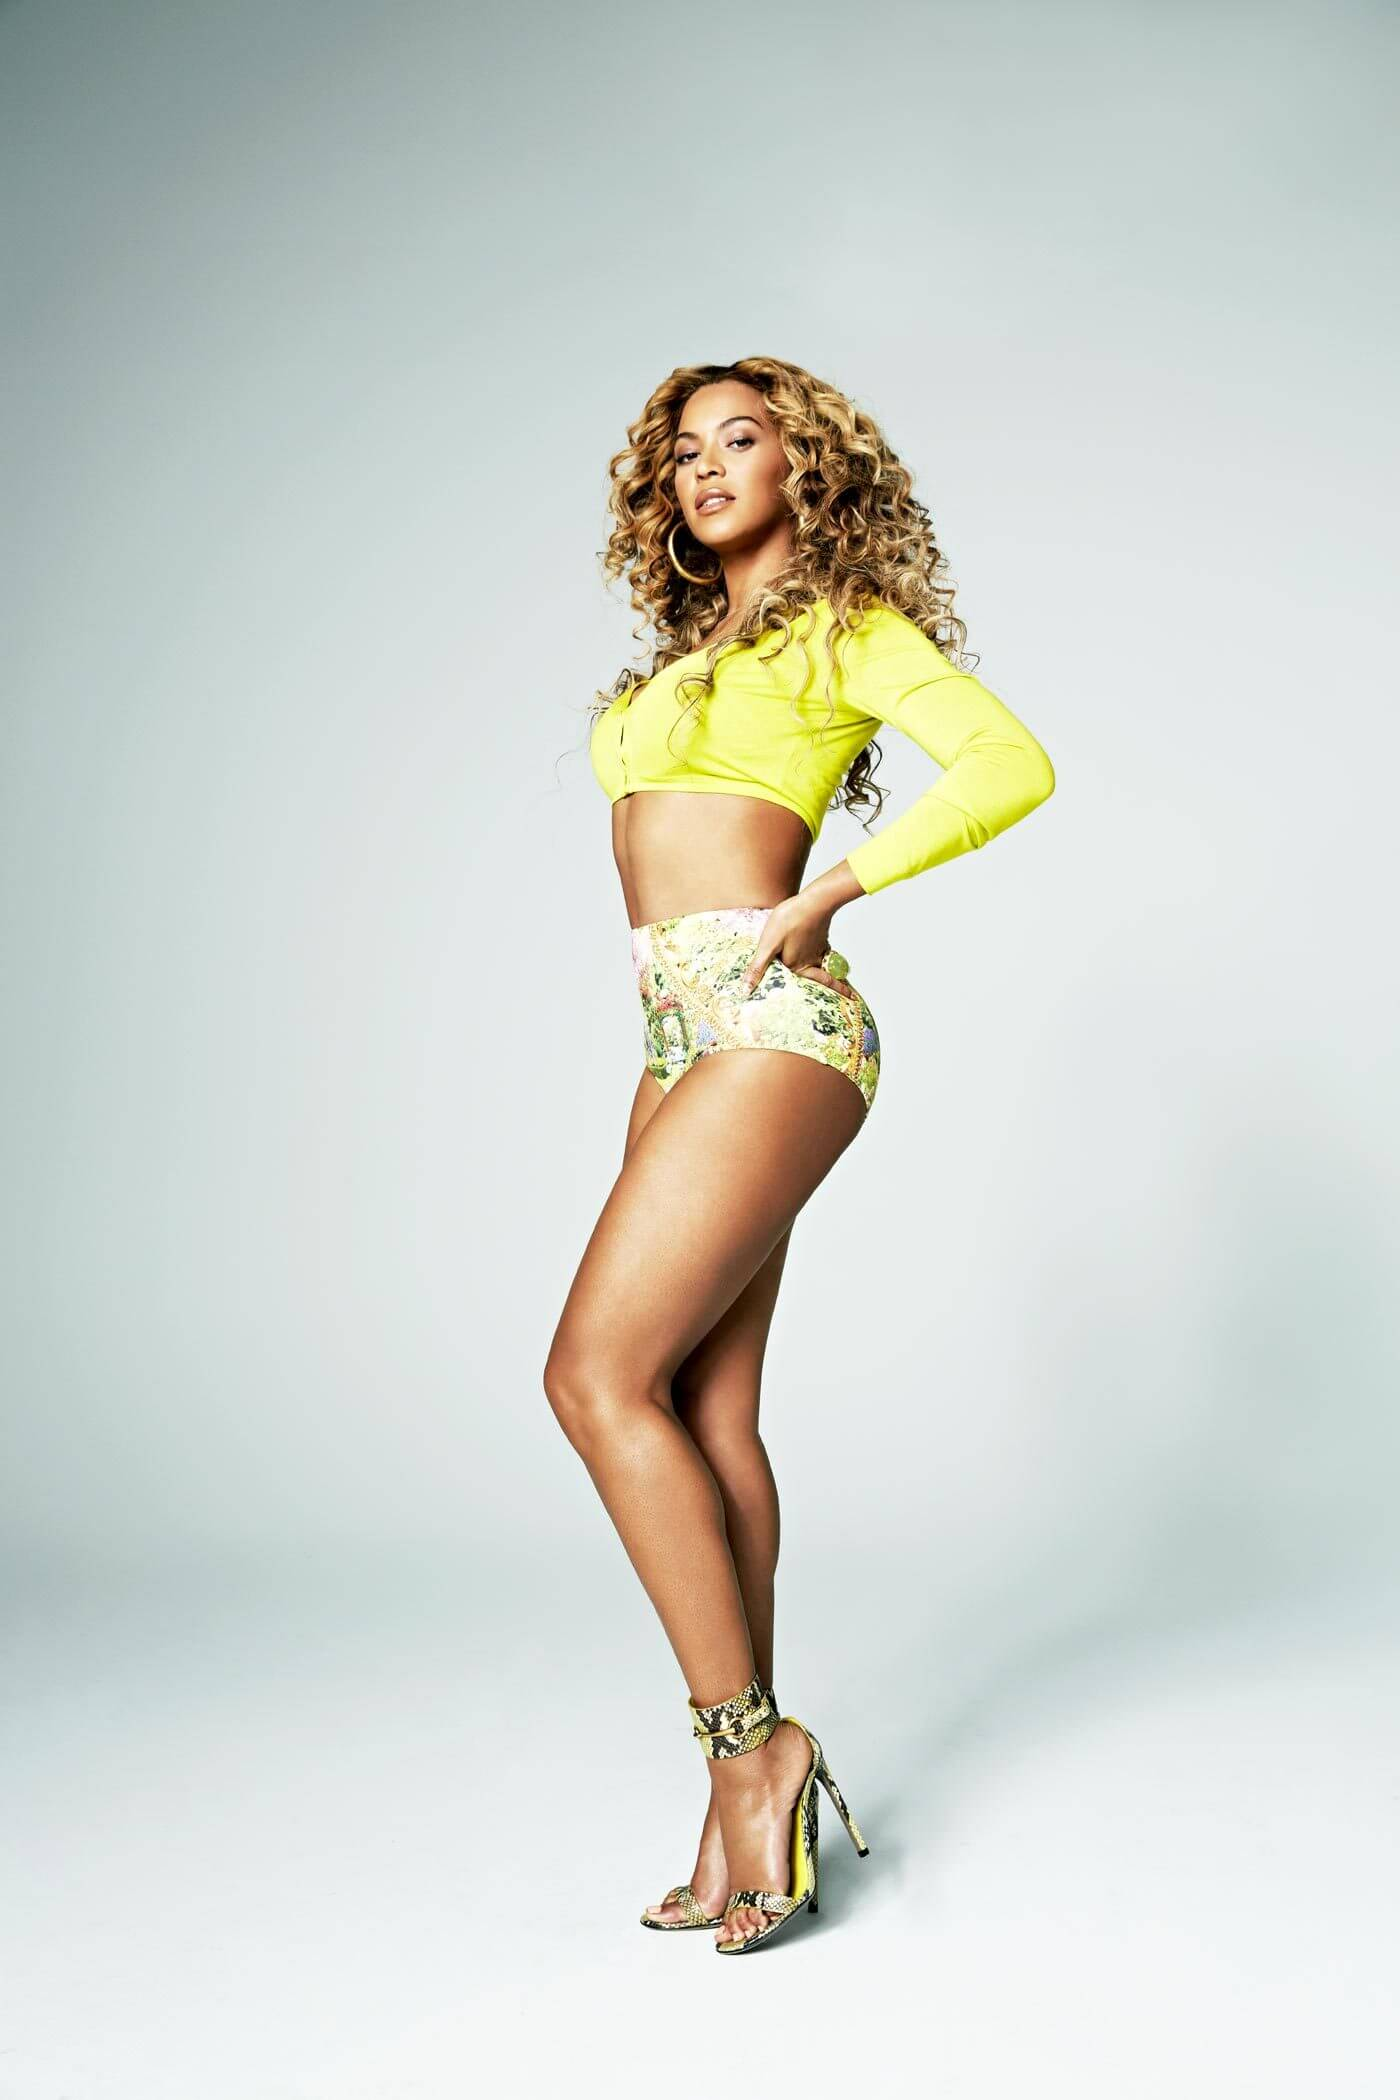 Beyonce hot butt pic